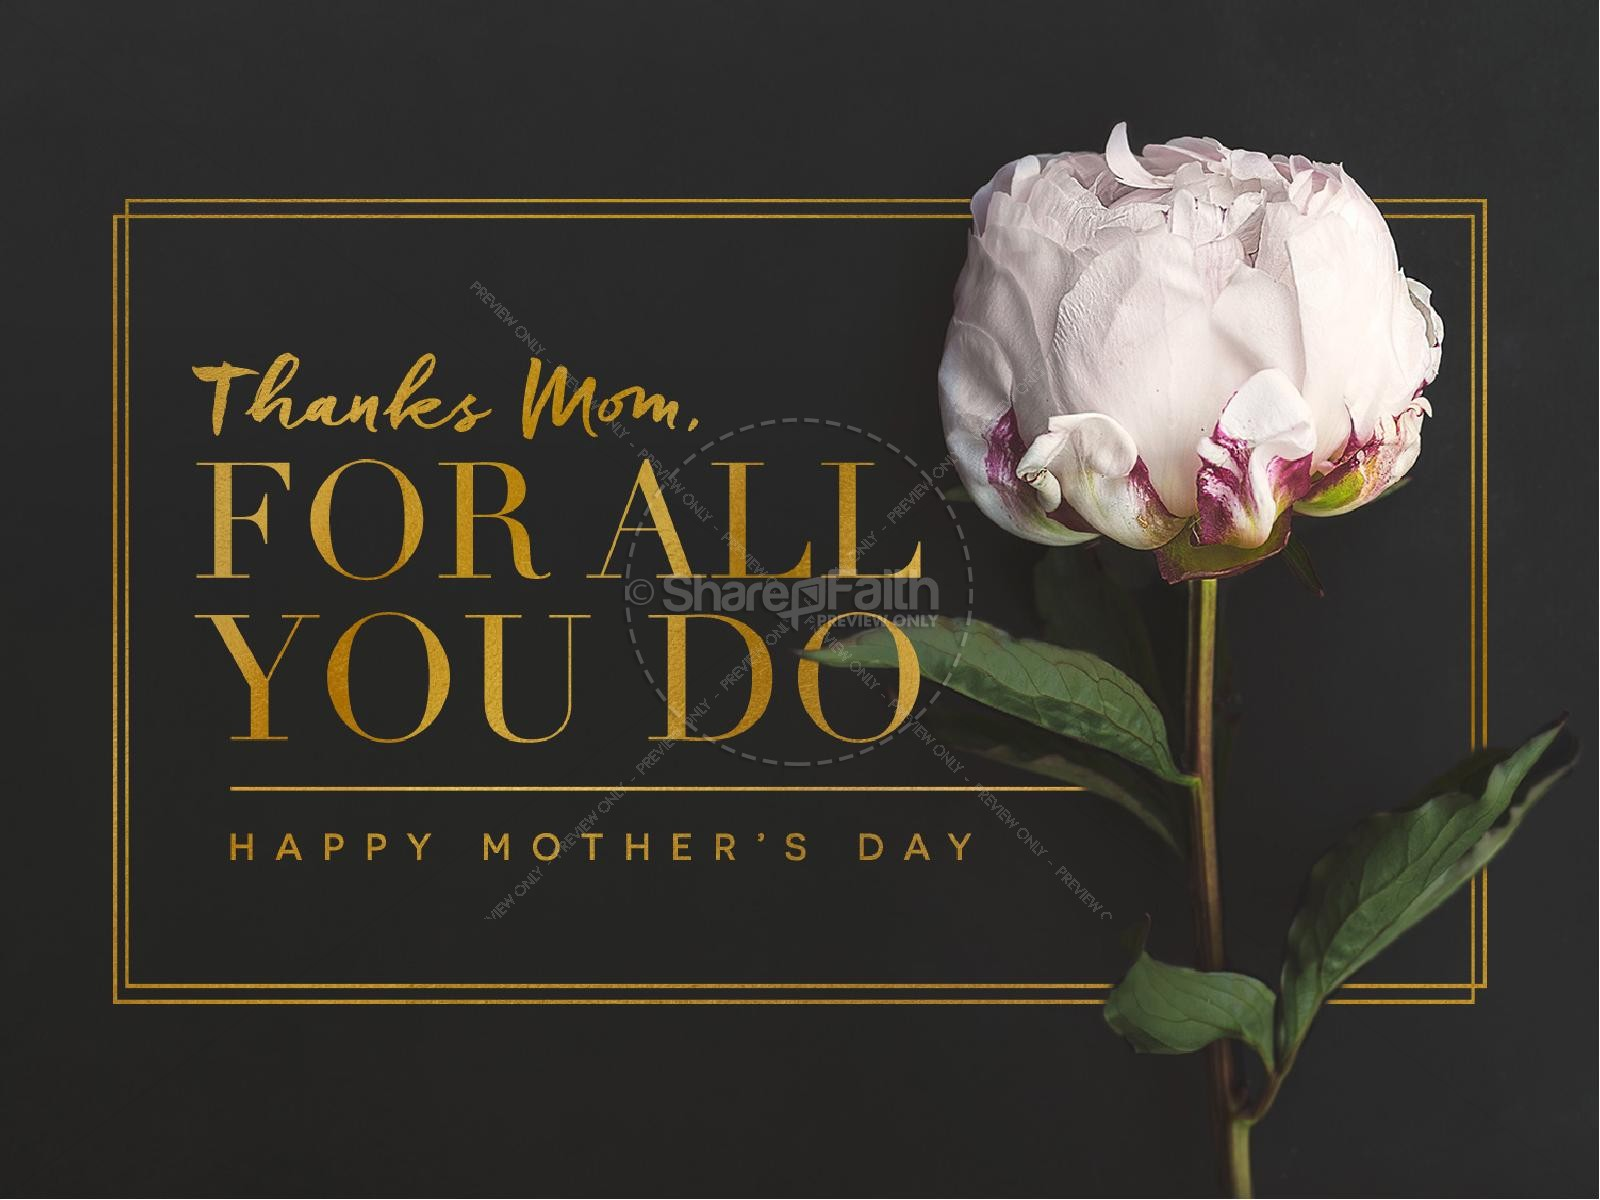 Thanks Mom, For All You Do Mother's Day Church PowerPoint   slide 1